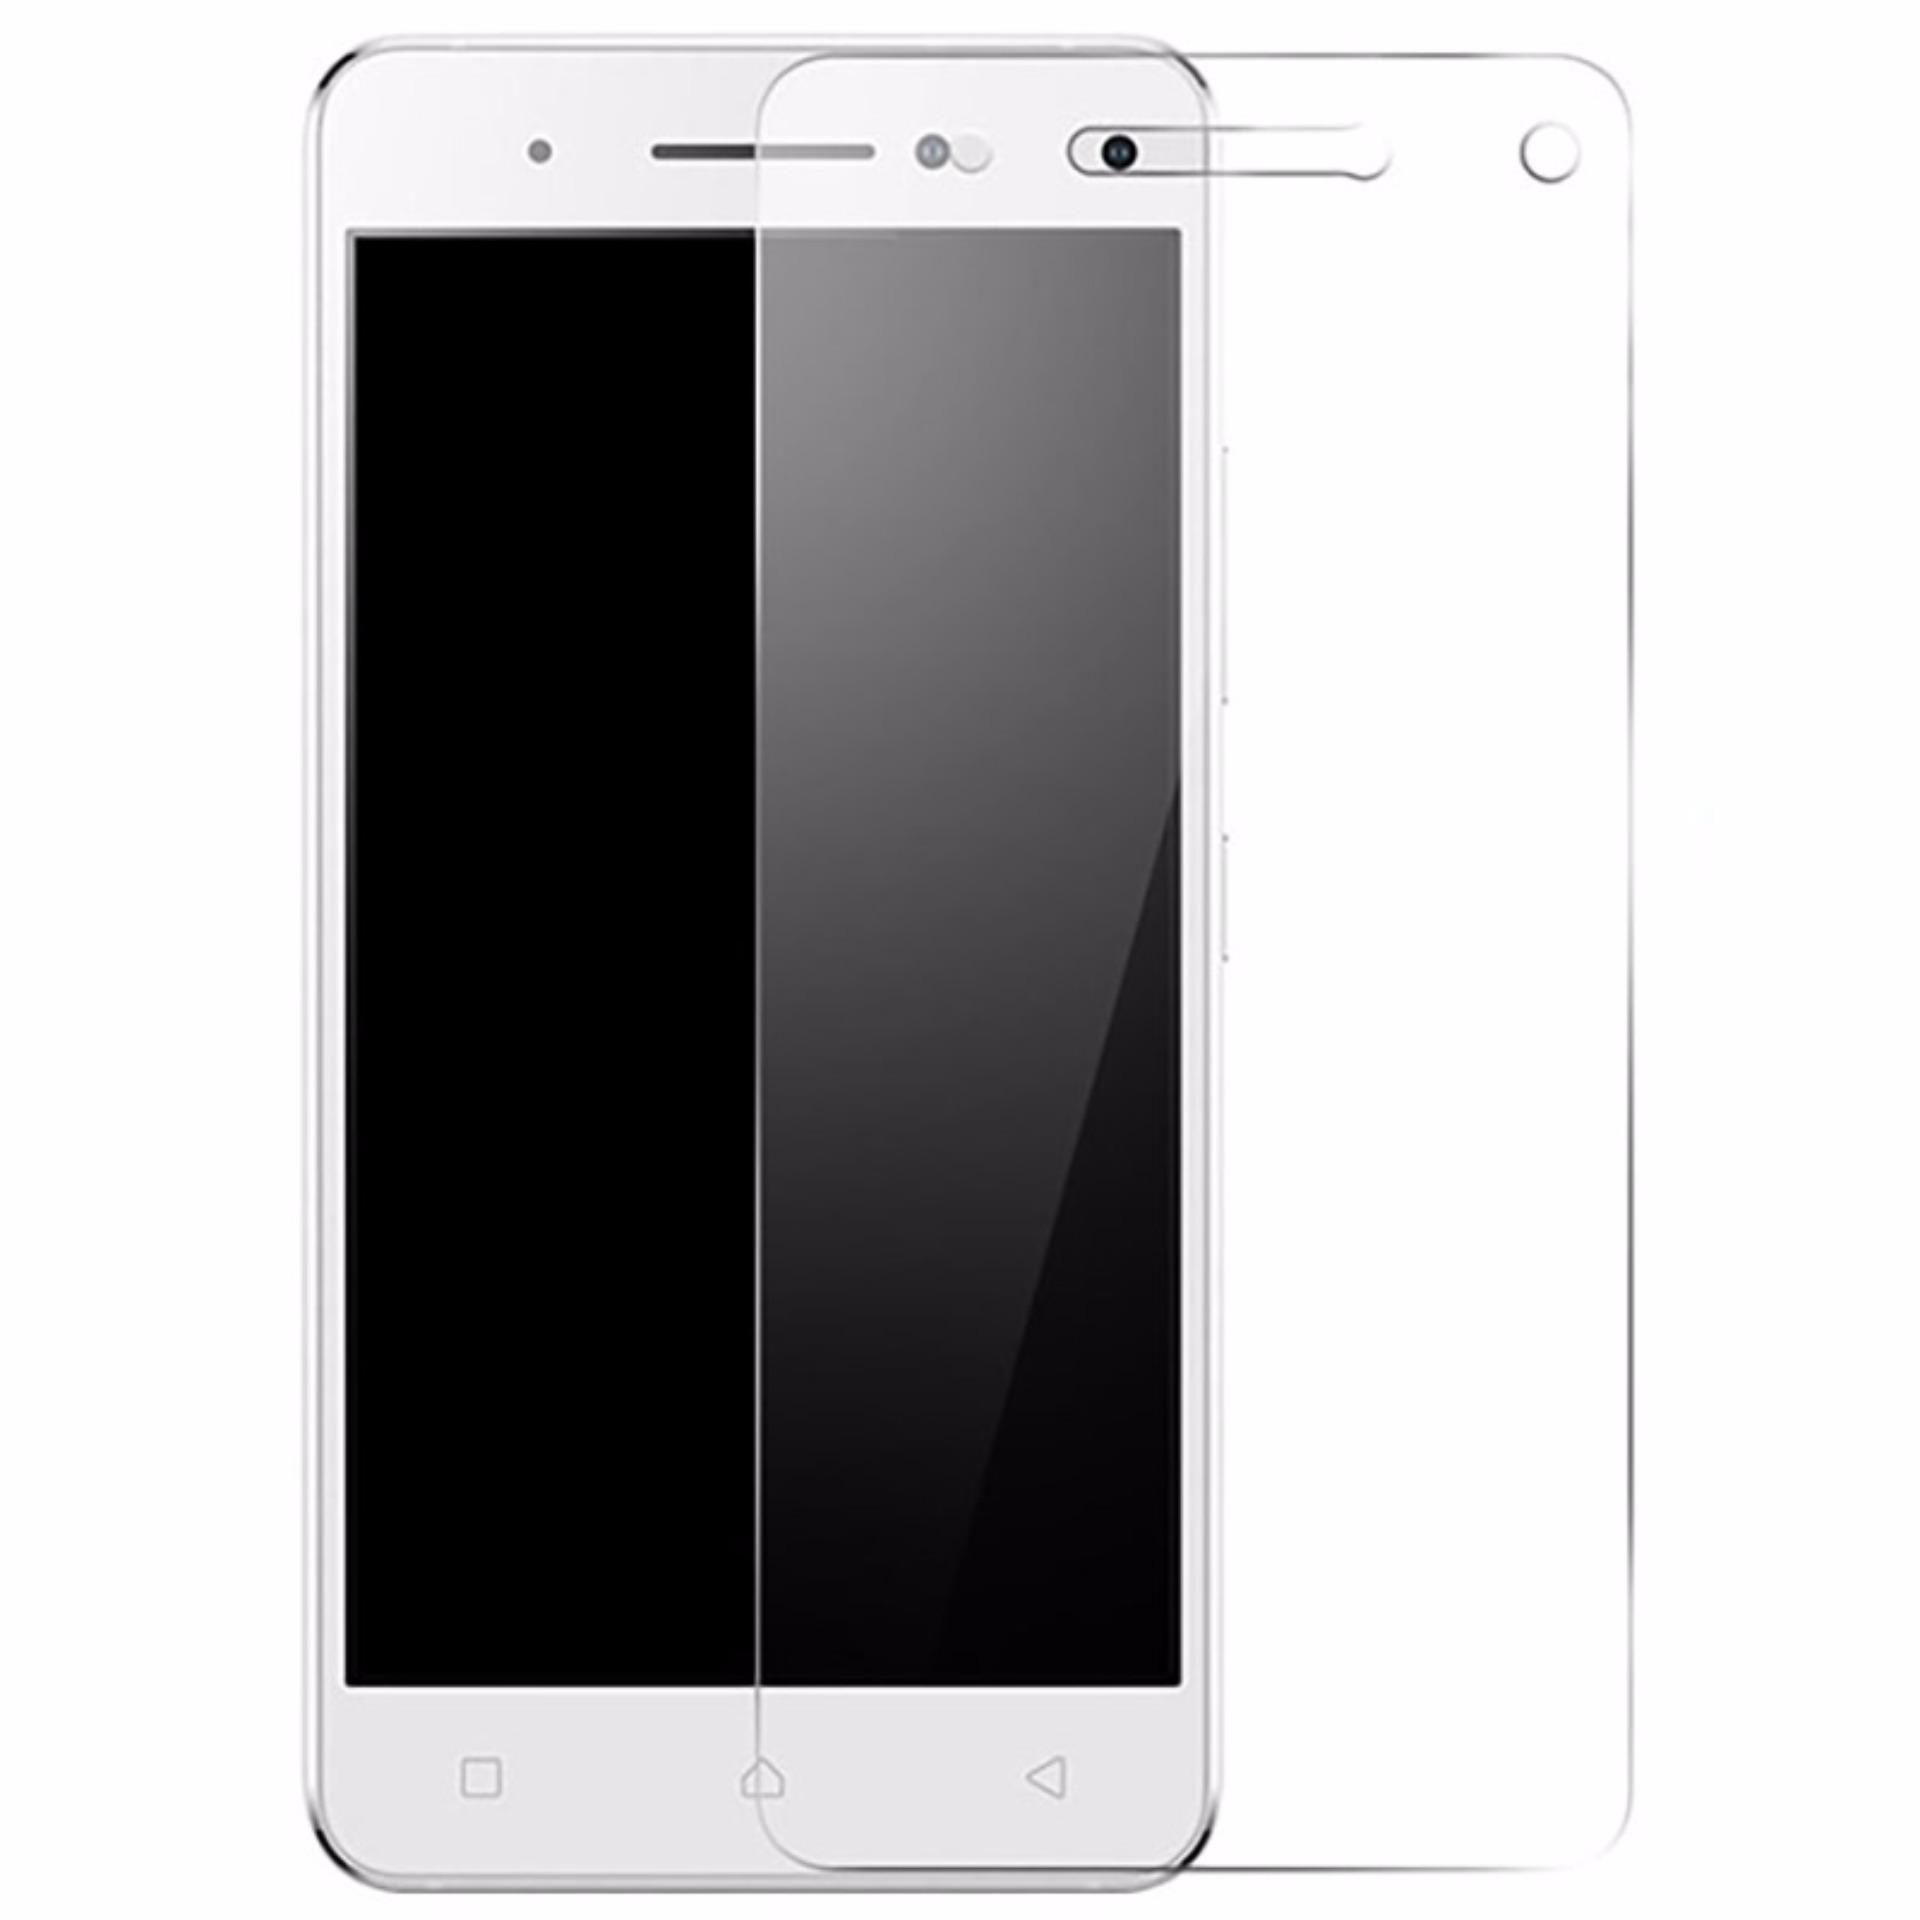 Vn Lenovo A6600 / A6600+ Plus Tempered Glass Screen Protector 0.32mm - Anti Crash Film - Bening